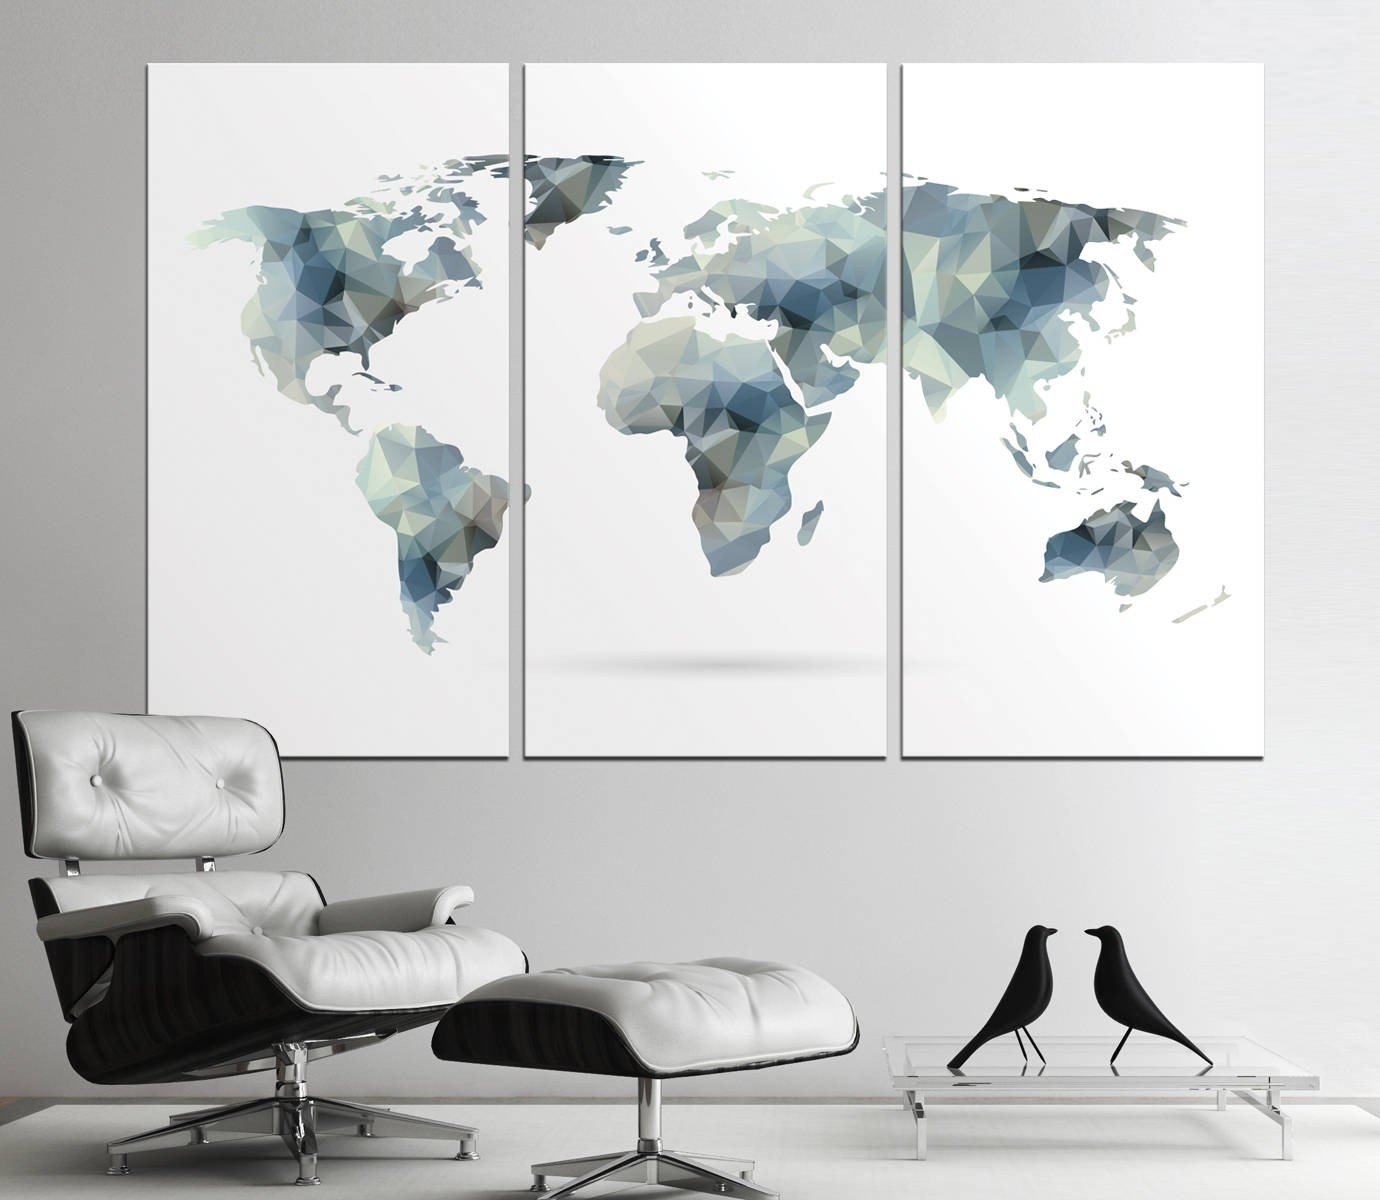 Displaying gallery of abstract wall art for office view 6 of 20 photos large geometric world map print abstract world map canvas panels for most current abstract wall gumiabroncs Image collections